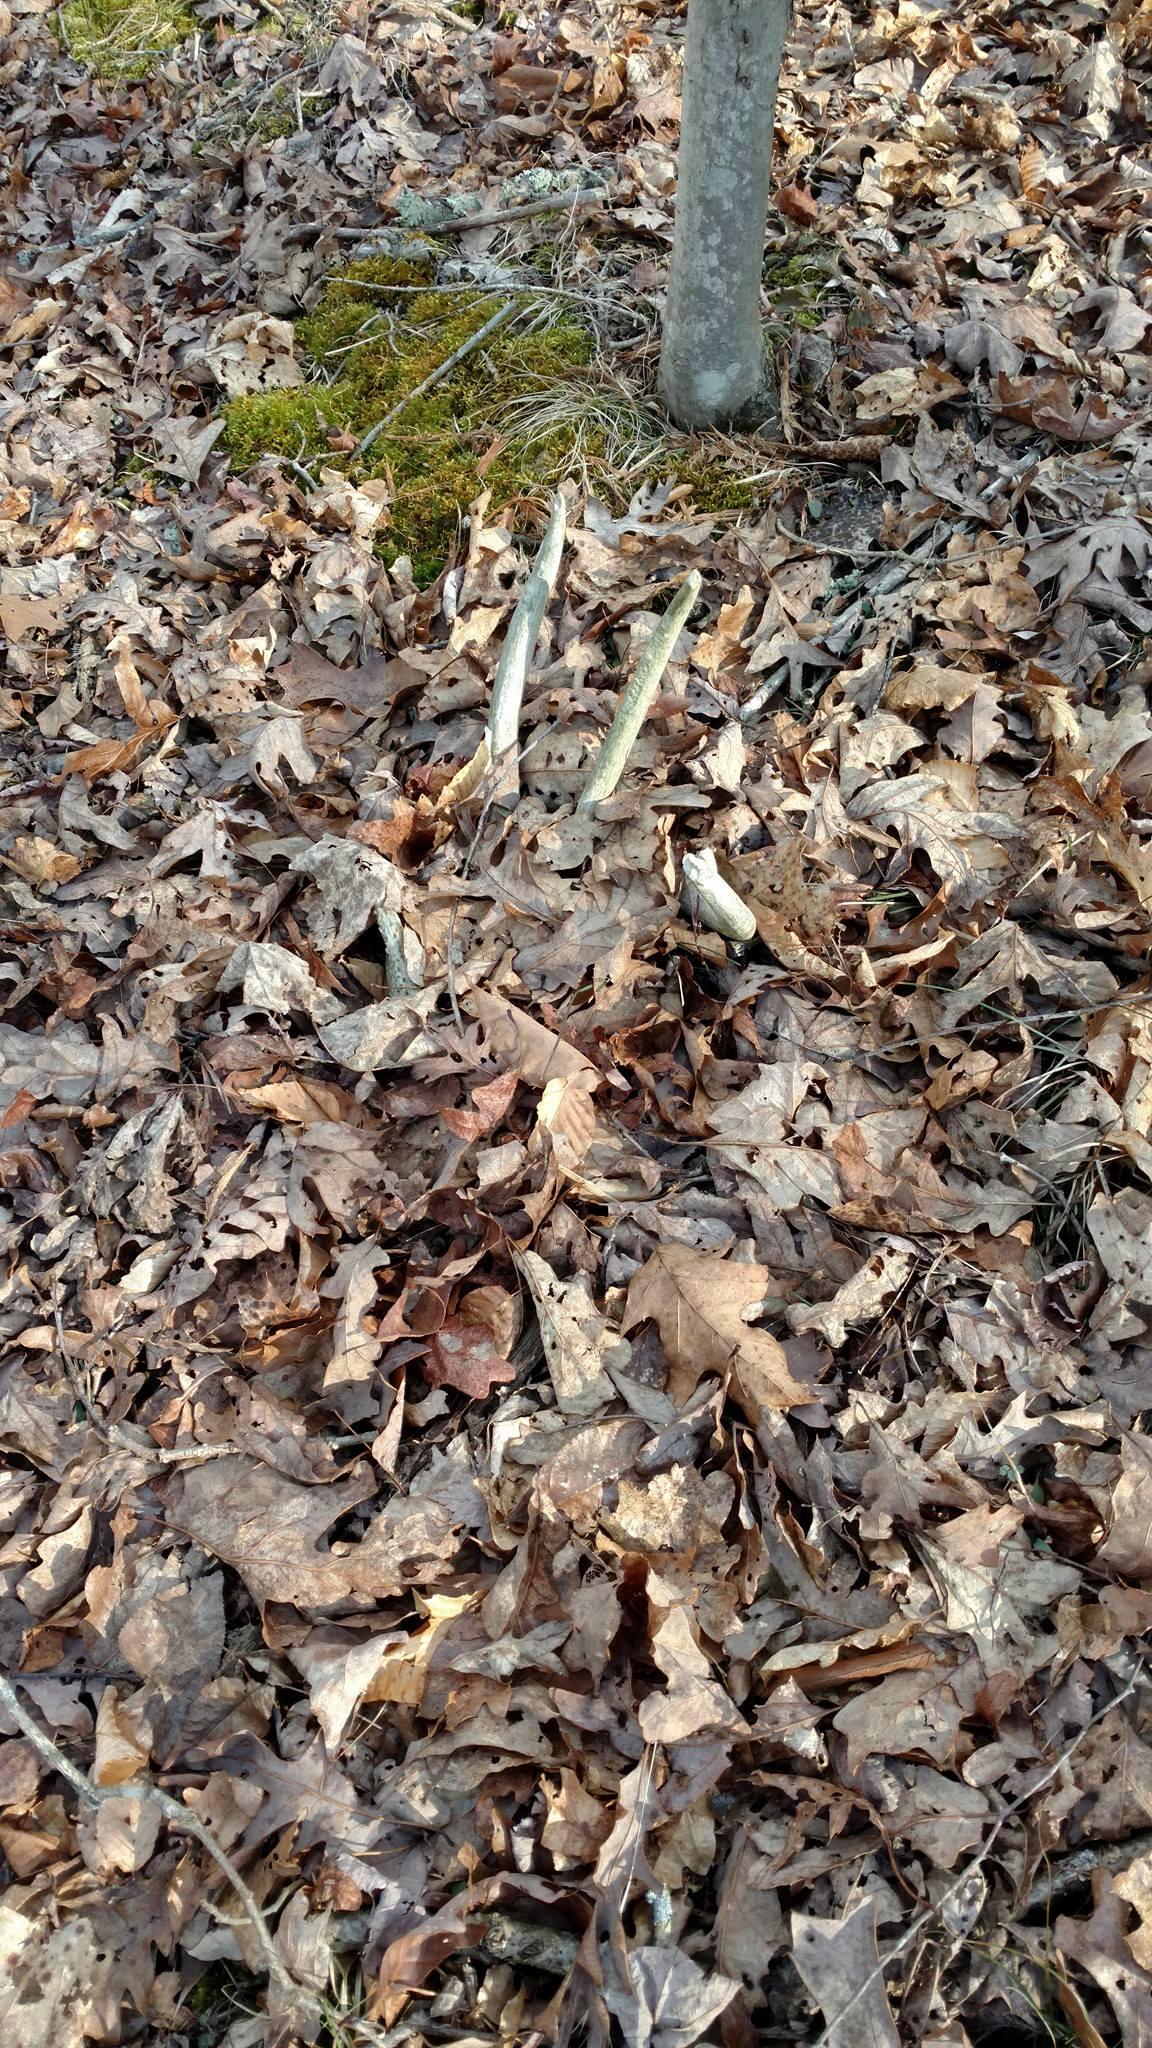 Shed antler in the leaves